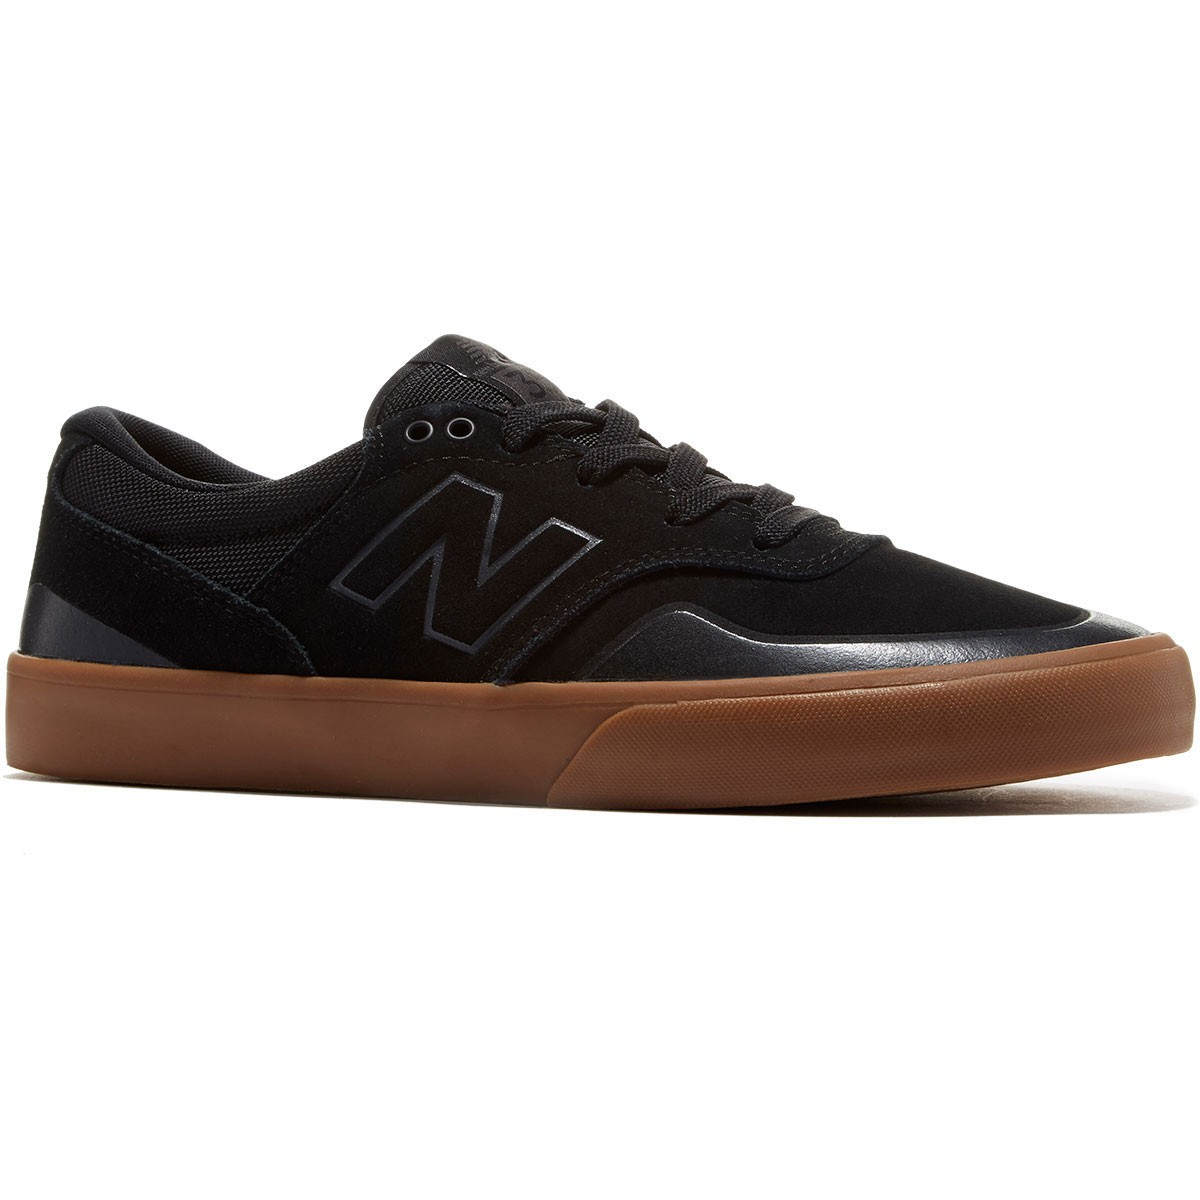 New Balance Arto 358 Shoes - Black/Gum - 8.0